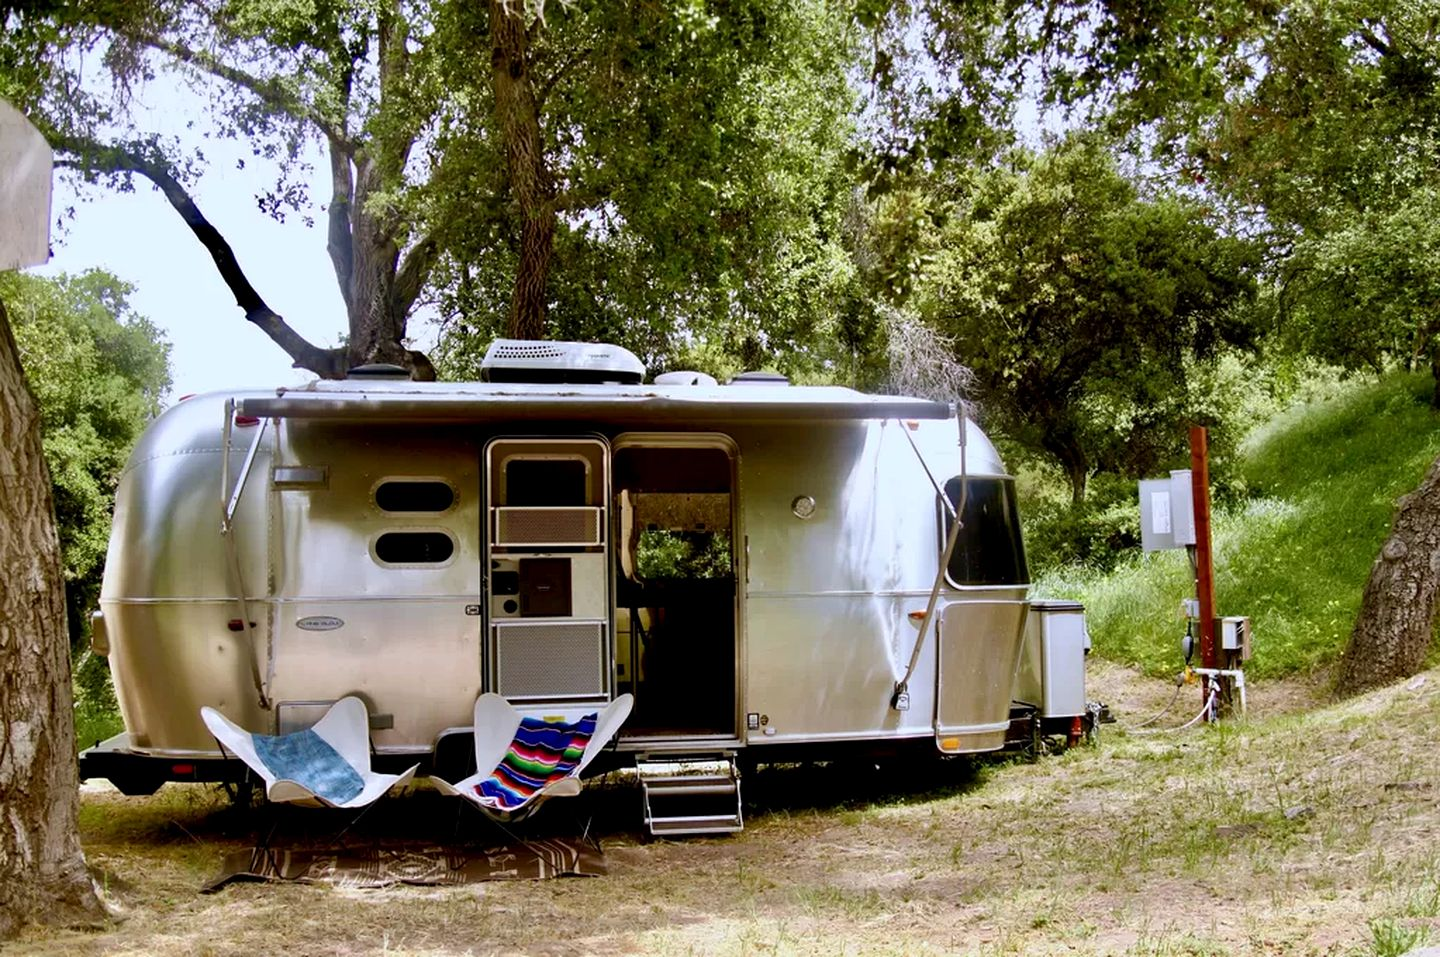 Airstream rental that's perfect to go glamping in California